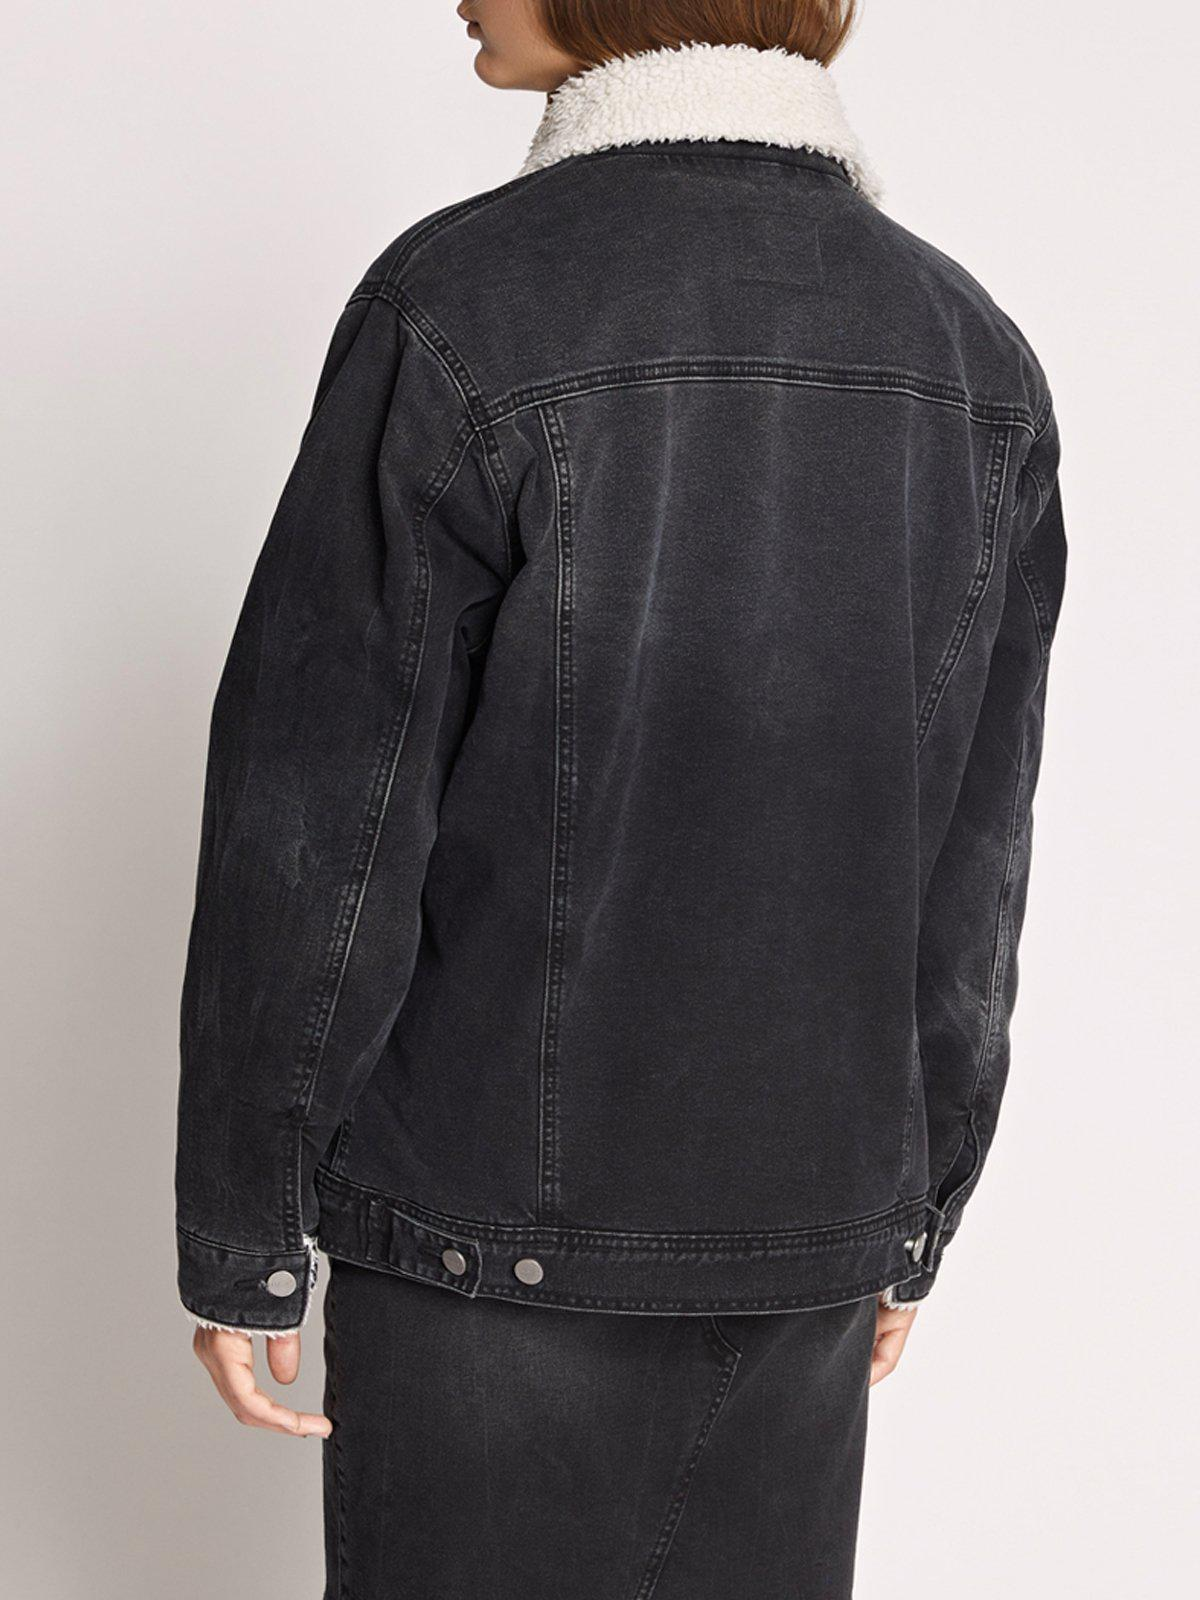 Sanctuary Clothing - Black Statement Sherpa Denim Jacket - Lyst. View  fullscreen 2e71c8650